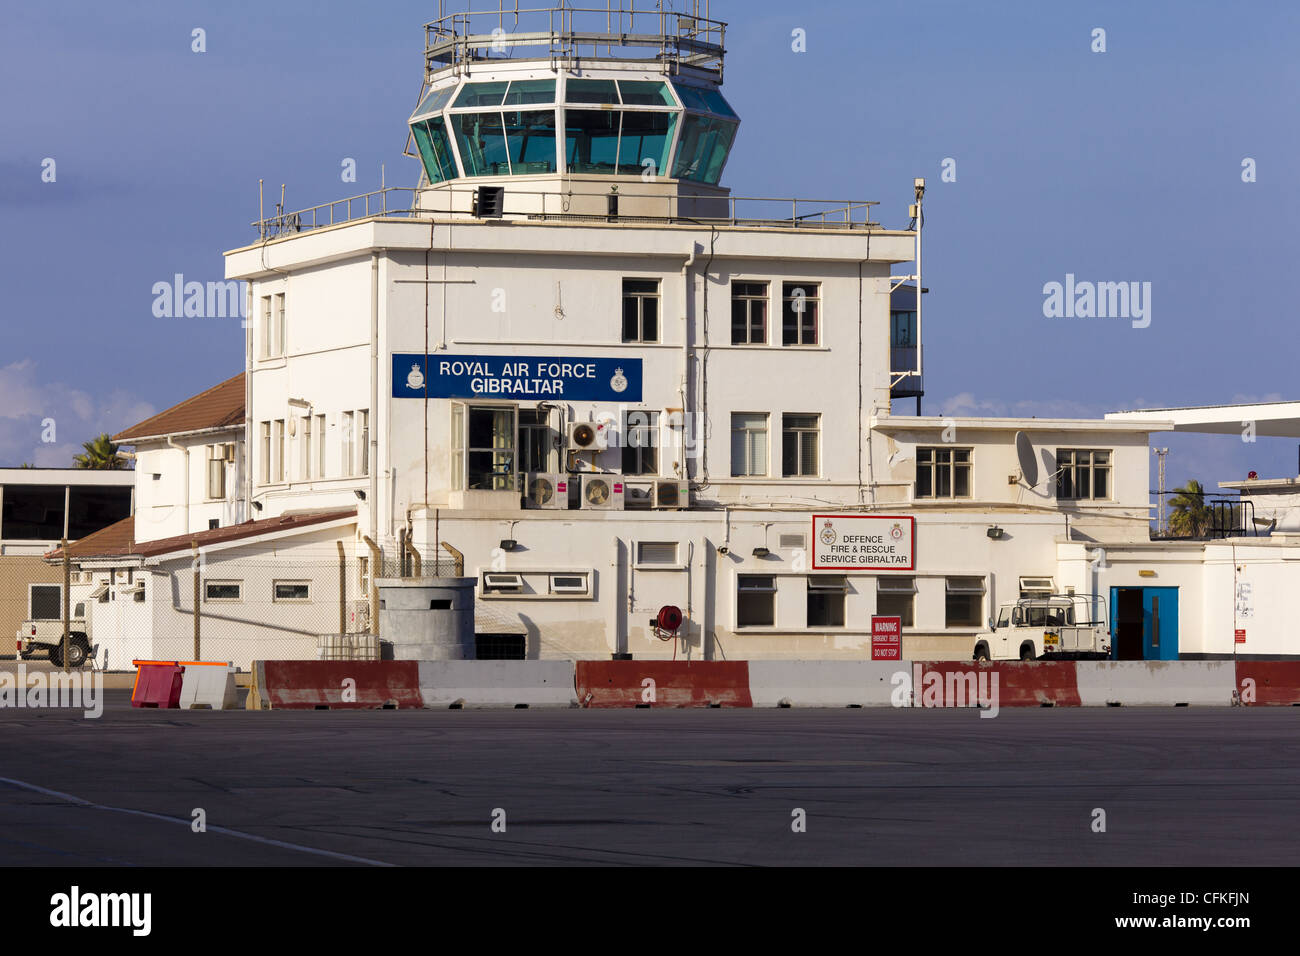 The air traffic control building showing the RAF presence at Gibraltar airport - Stock Image